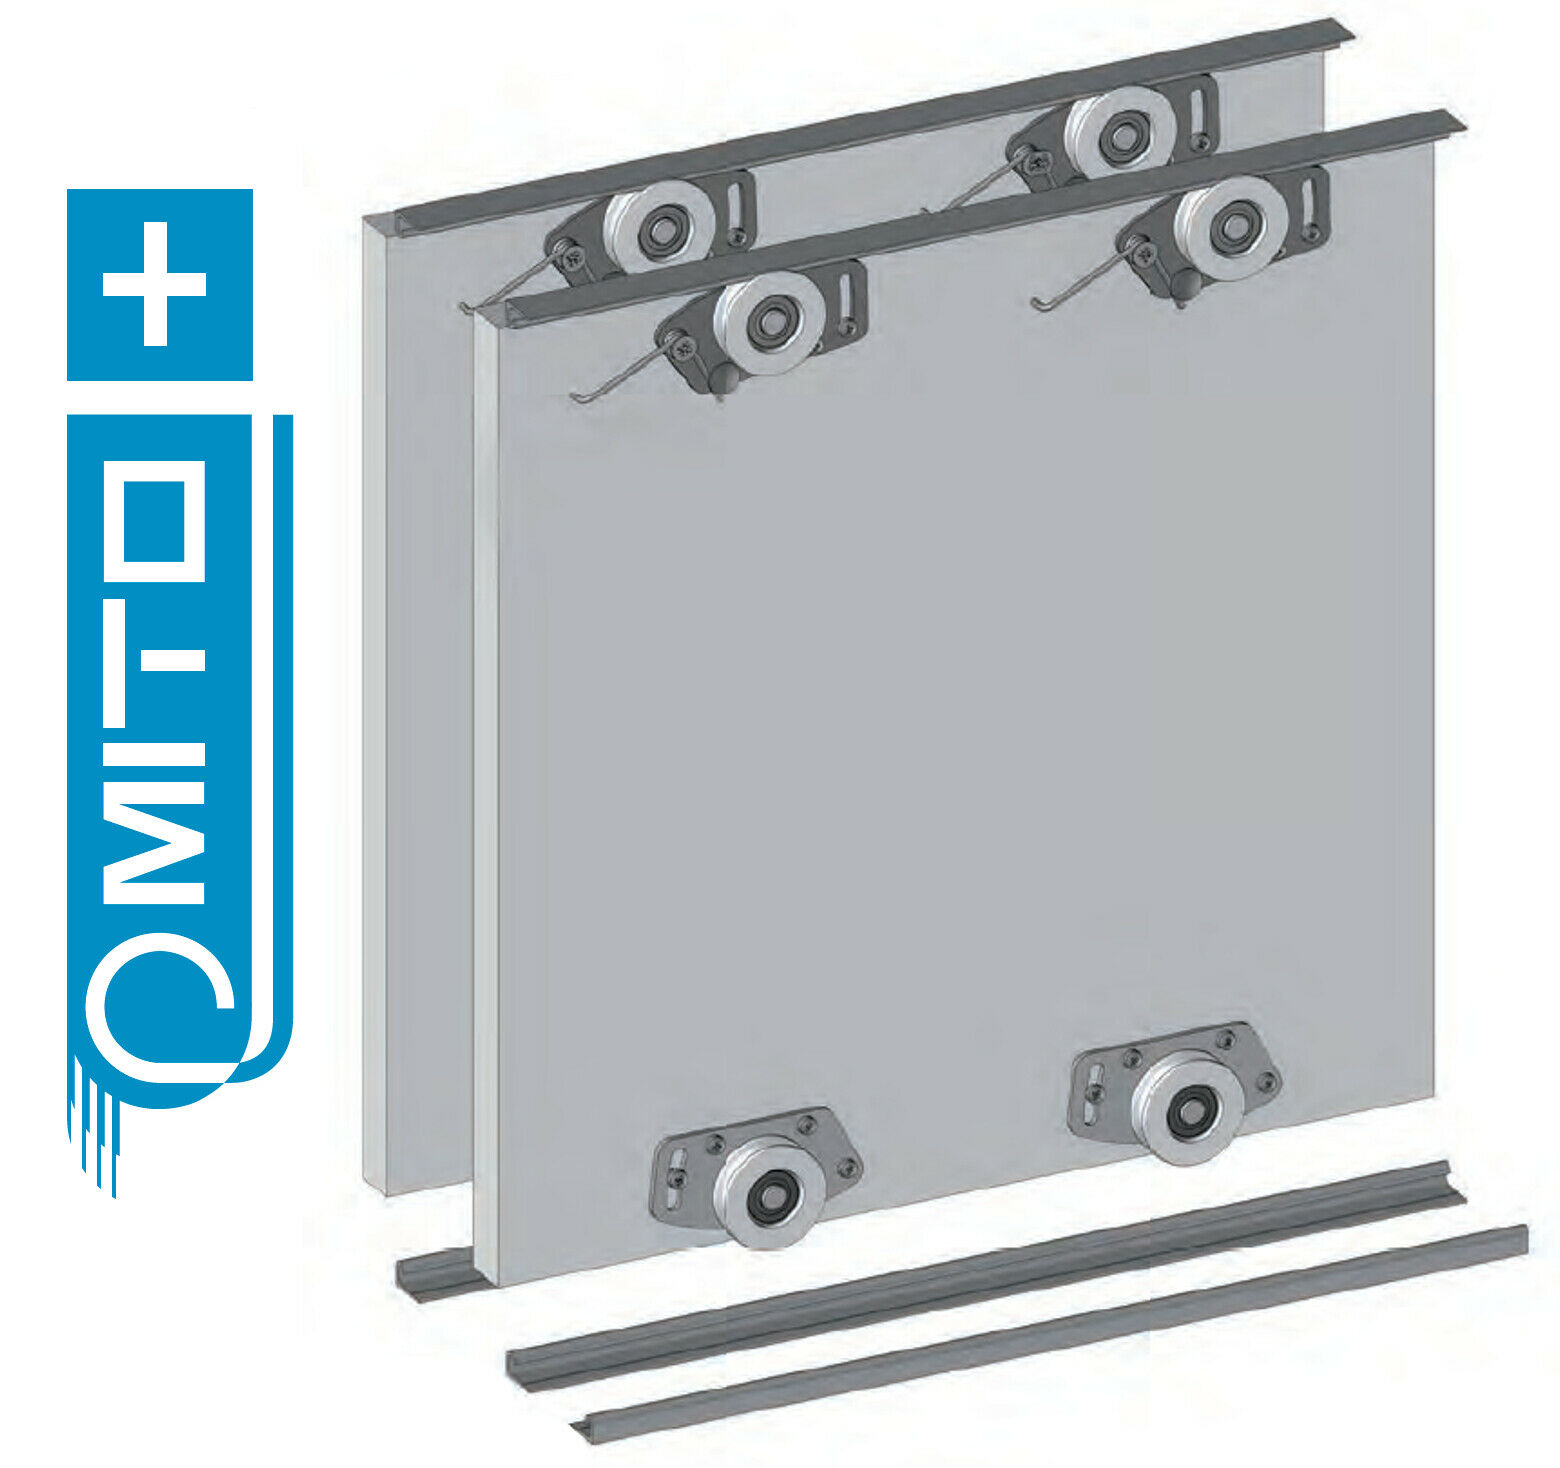 Details about Wardrobe Sliding Door Track Gear System Kit - MITO PLUS -  2000mm, 2500mm, 3000mm